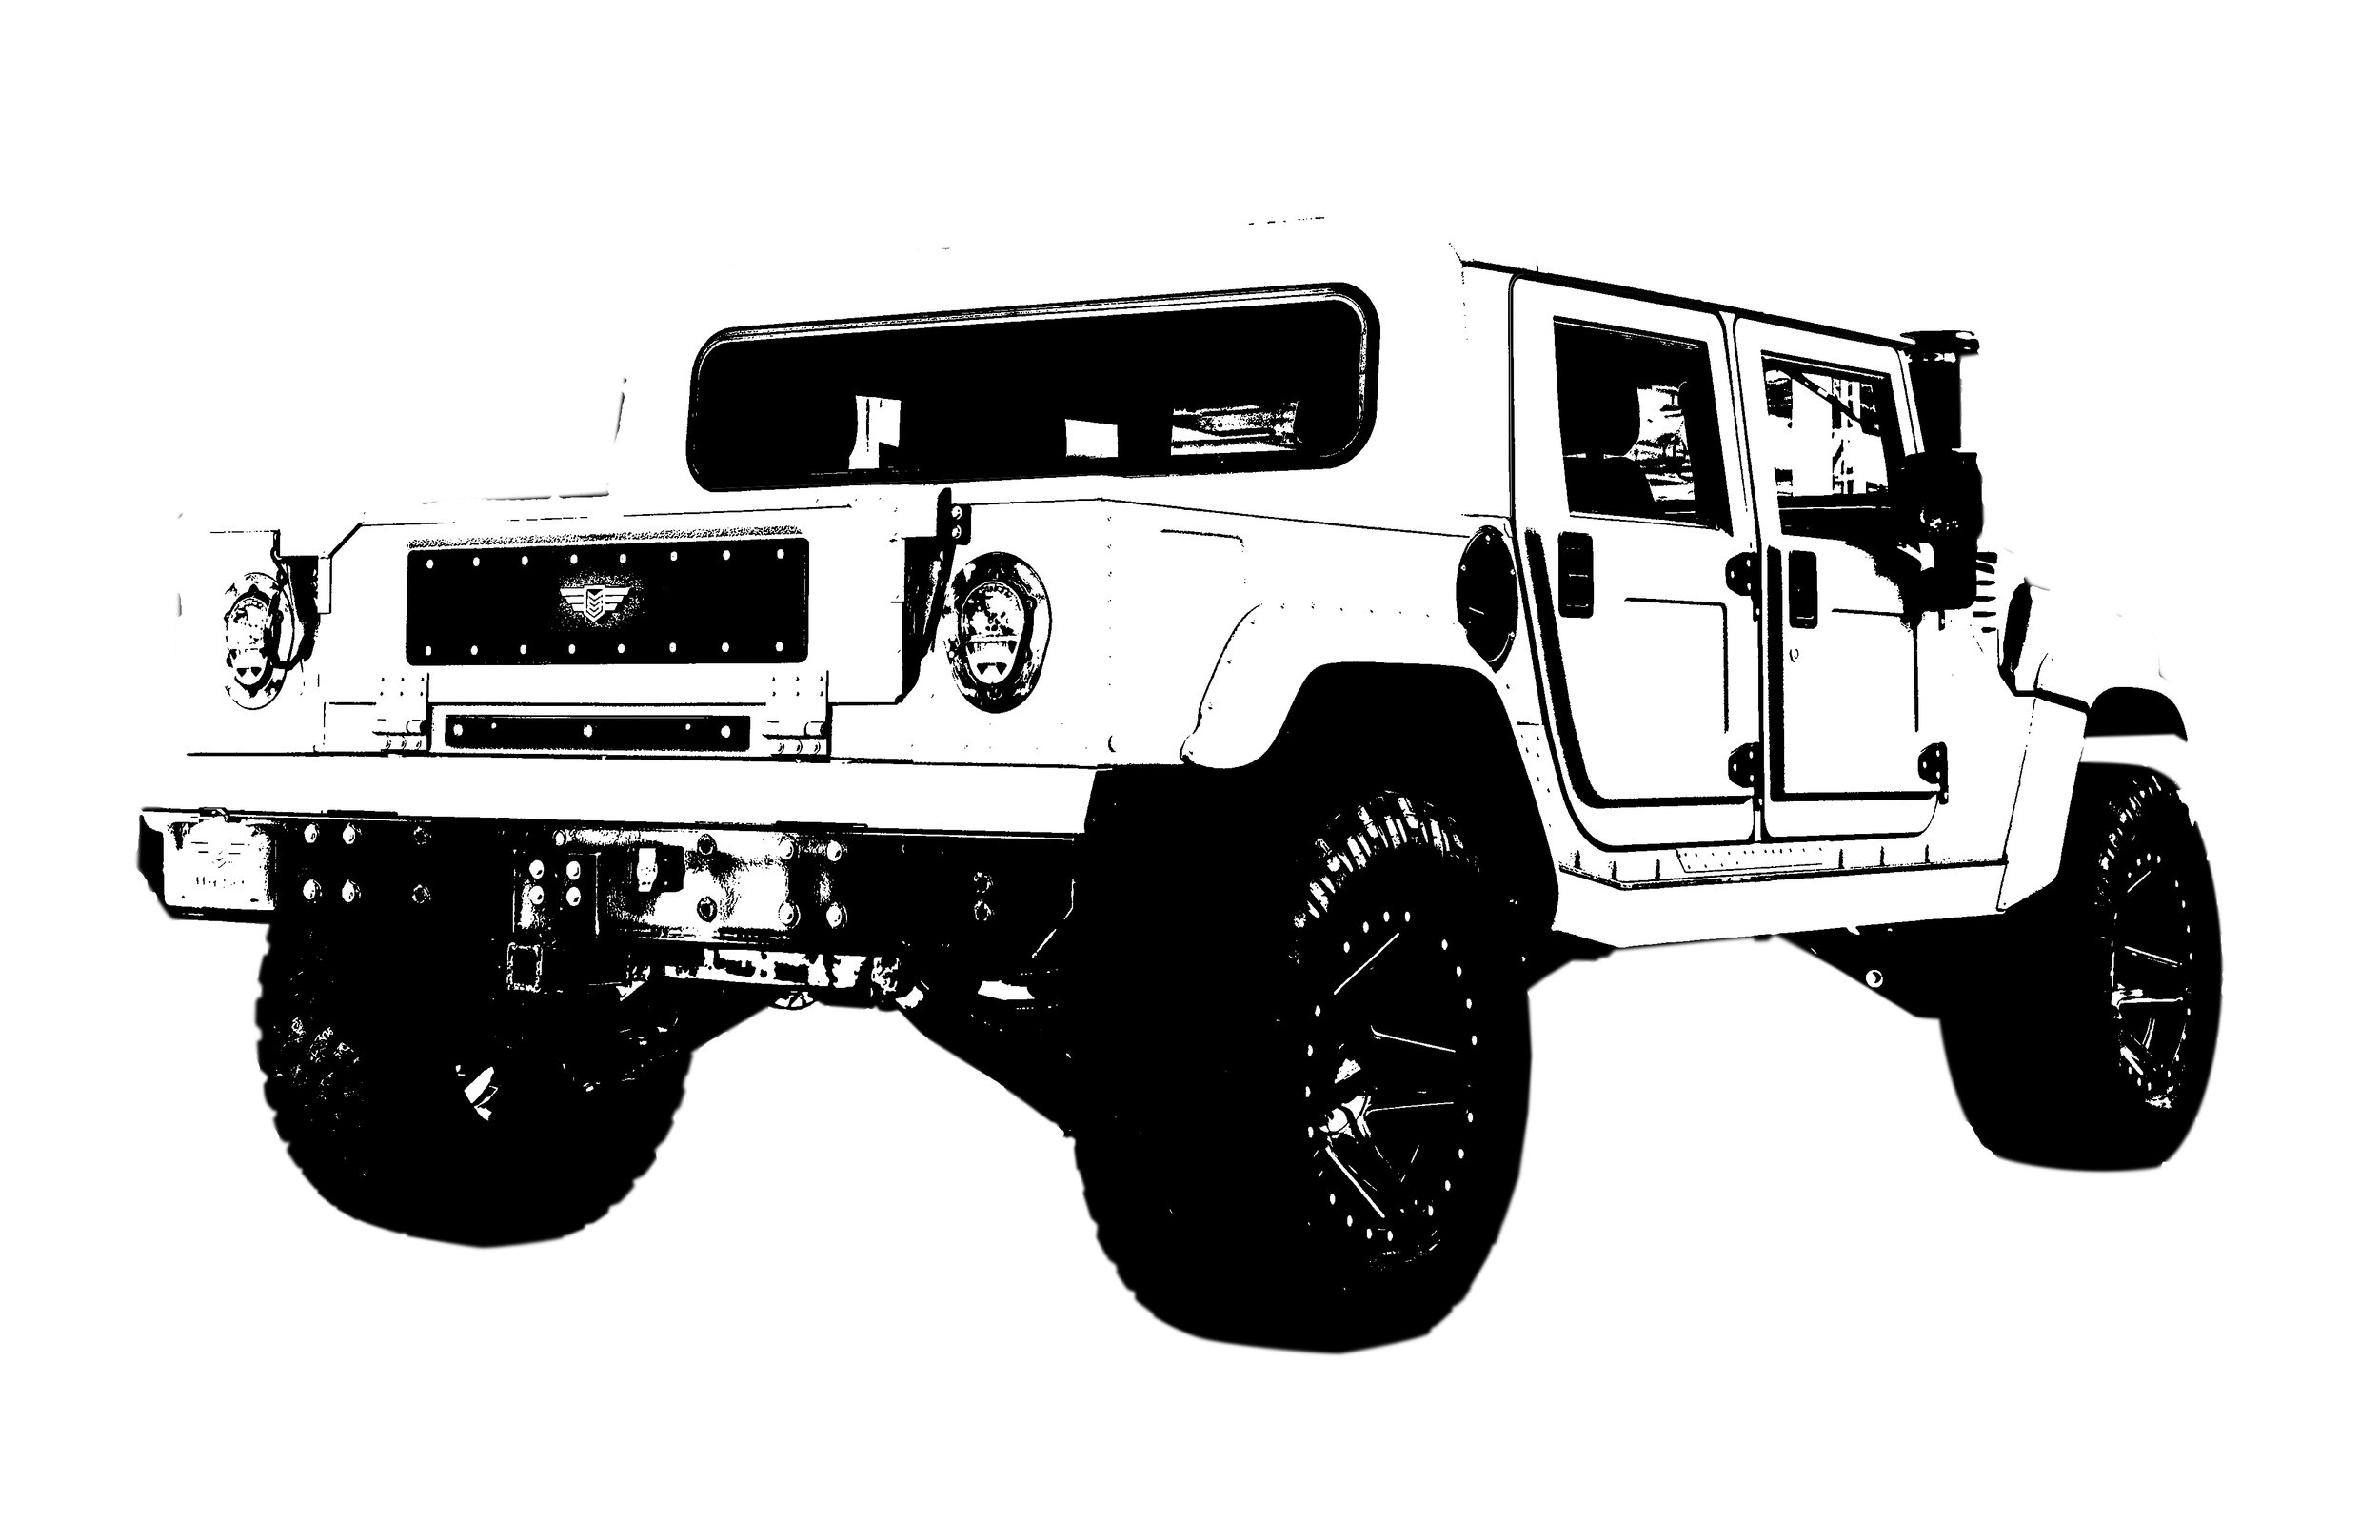 Four Door Hard-Top Pickup - Standard length pickup bed (LxWxH 42 in x 51.5 in x13.5 in) with non-removeable, steel hardtop, oversized(non-opening) rear window, 2 row seatingconfiguration with standard bulkhead (subwoofer,amplifier, and locking storage box) configuration,texture coated black or matched to body color,acoustic deadening cab treatment coating, sounddeadened aircraft grade aluminum headliner panelswrapped with headliner padding